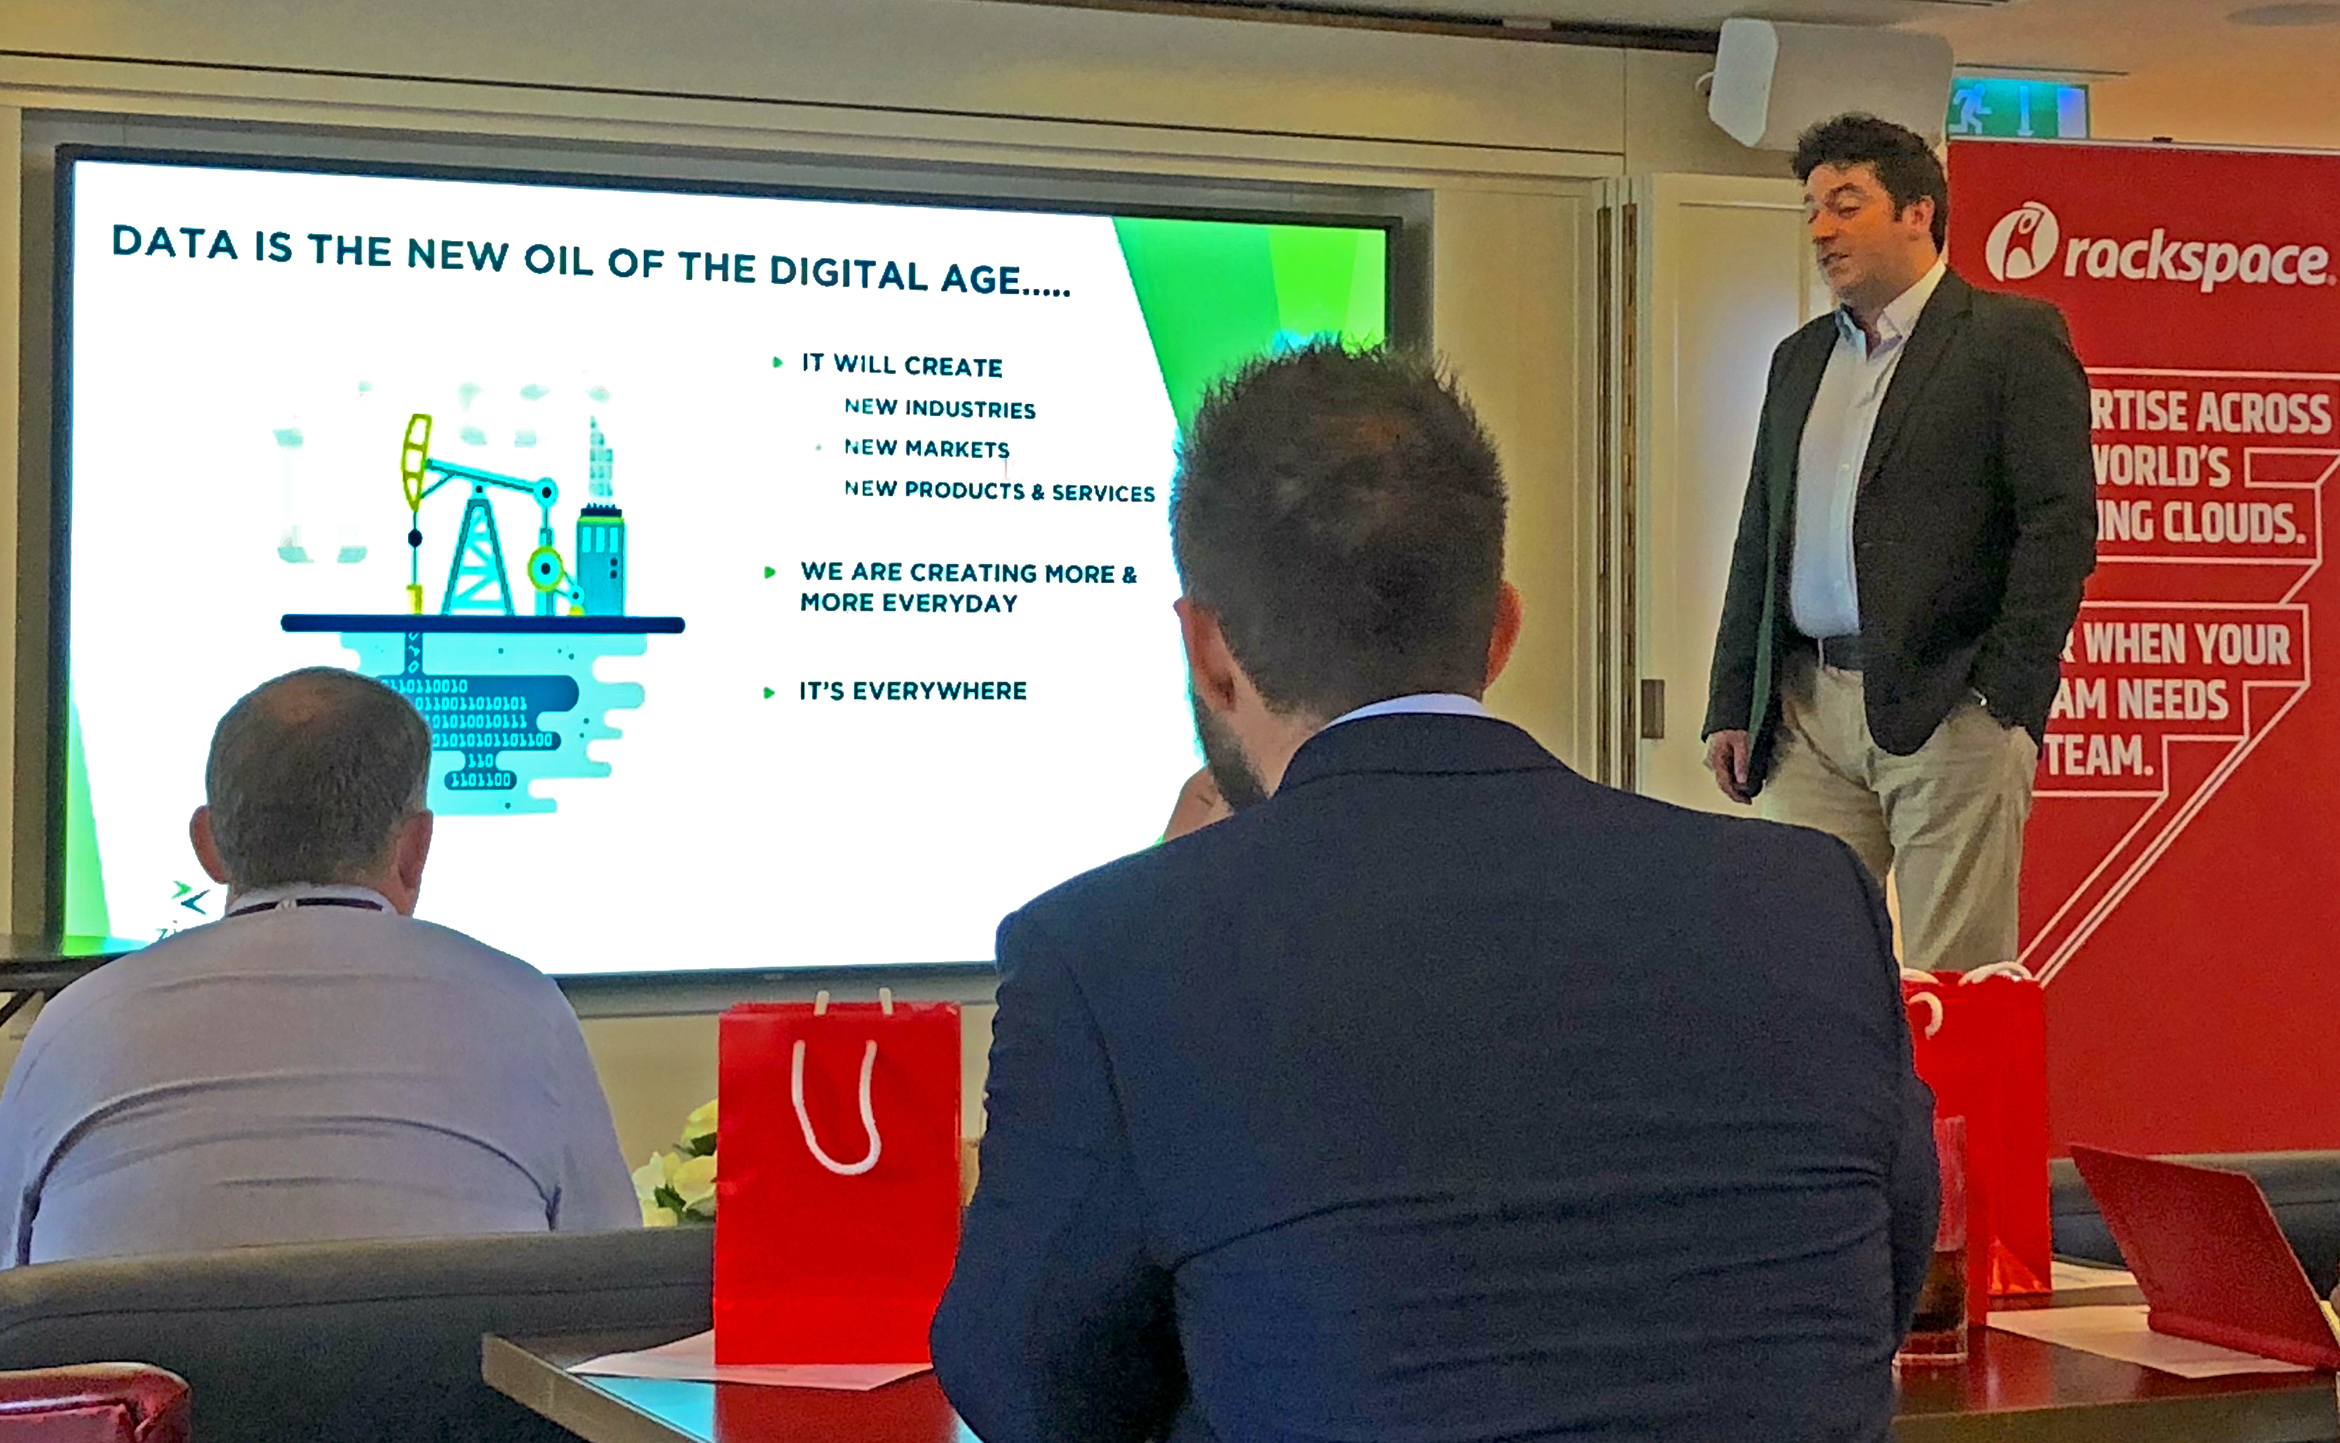 Data is the new oil of the digital age - Zizo